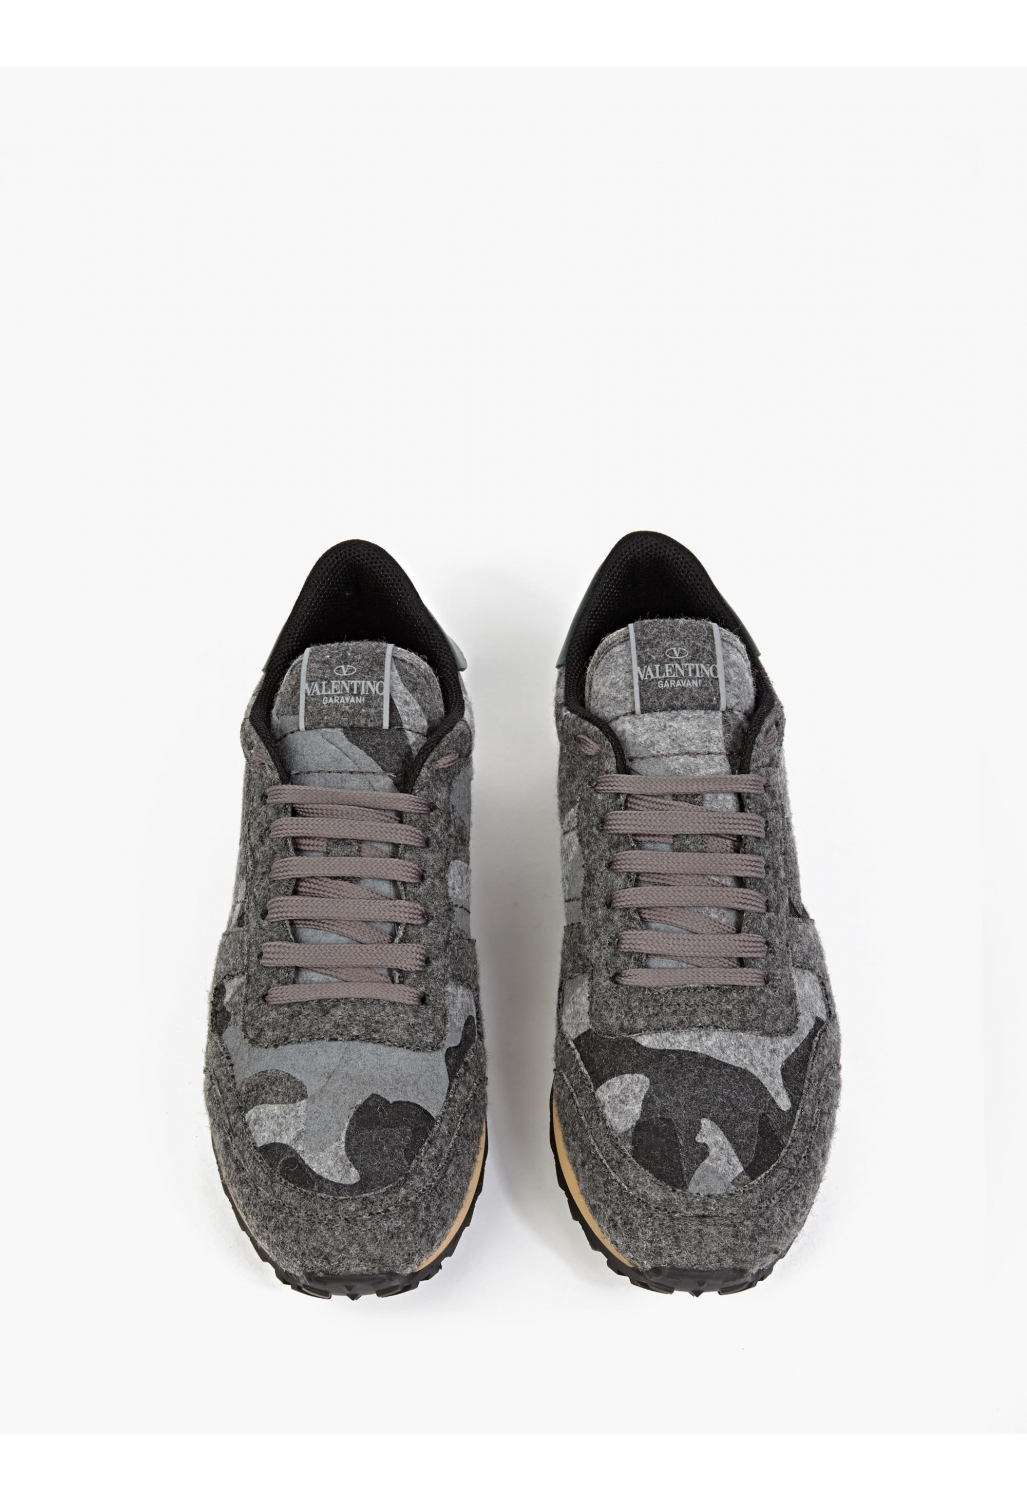 valentino grey felt camouflage sneakers in gray for men lyst. Black Bedroom Furniture Sets. Home Design Ideas